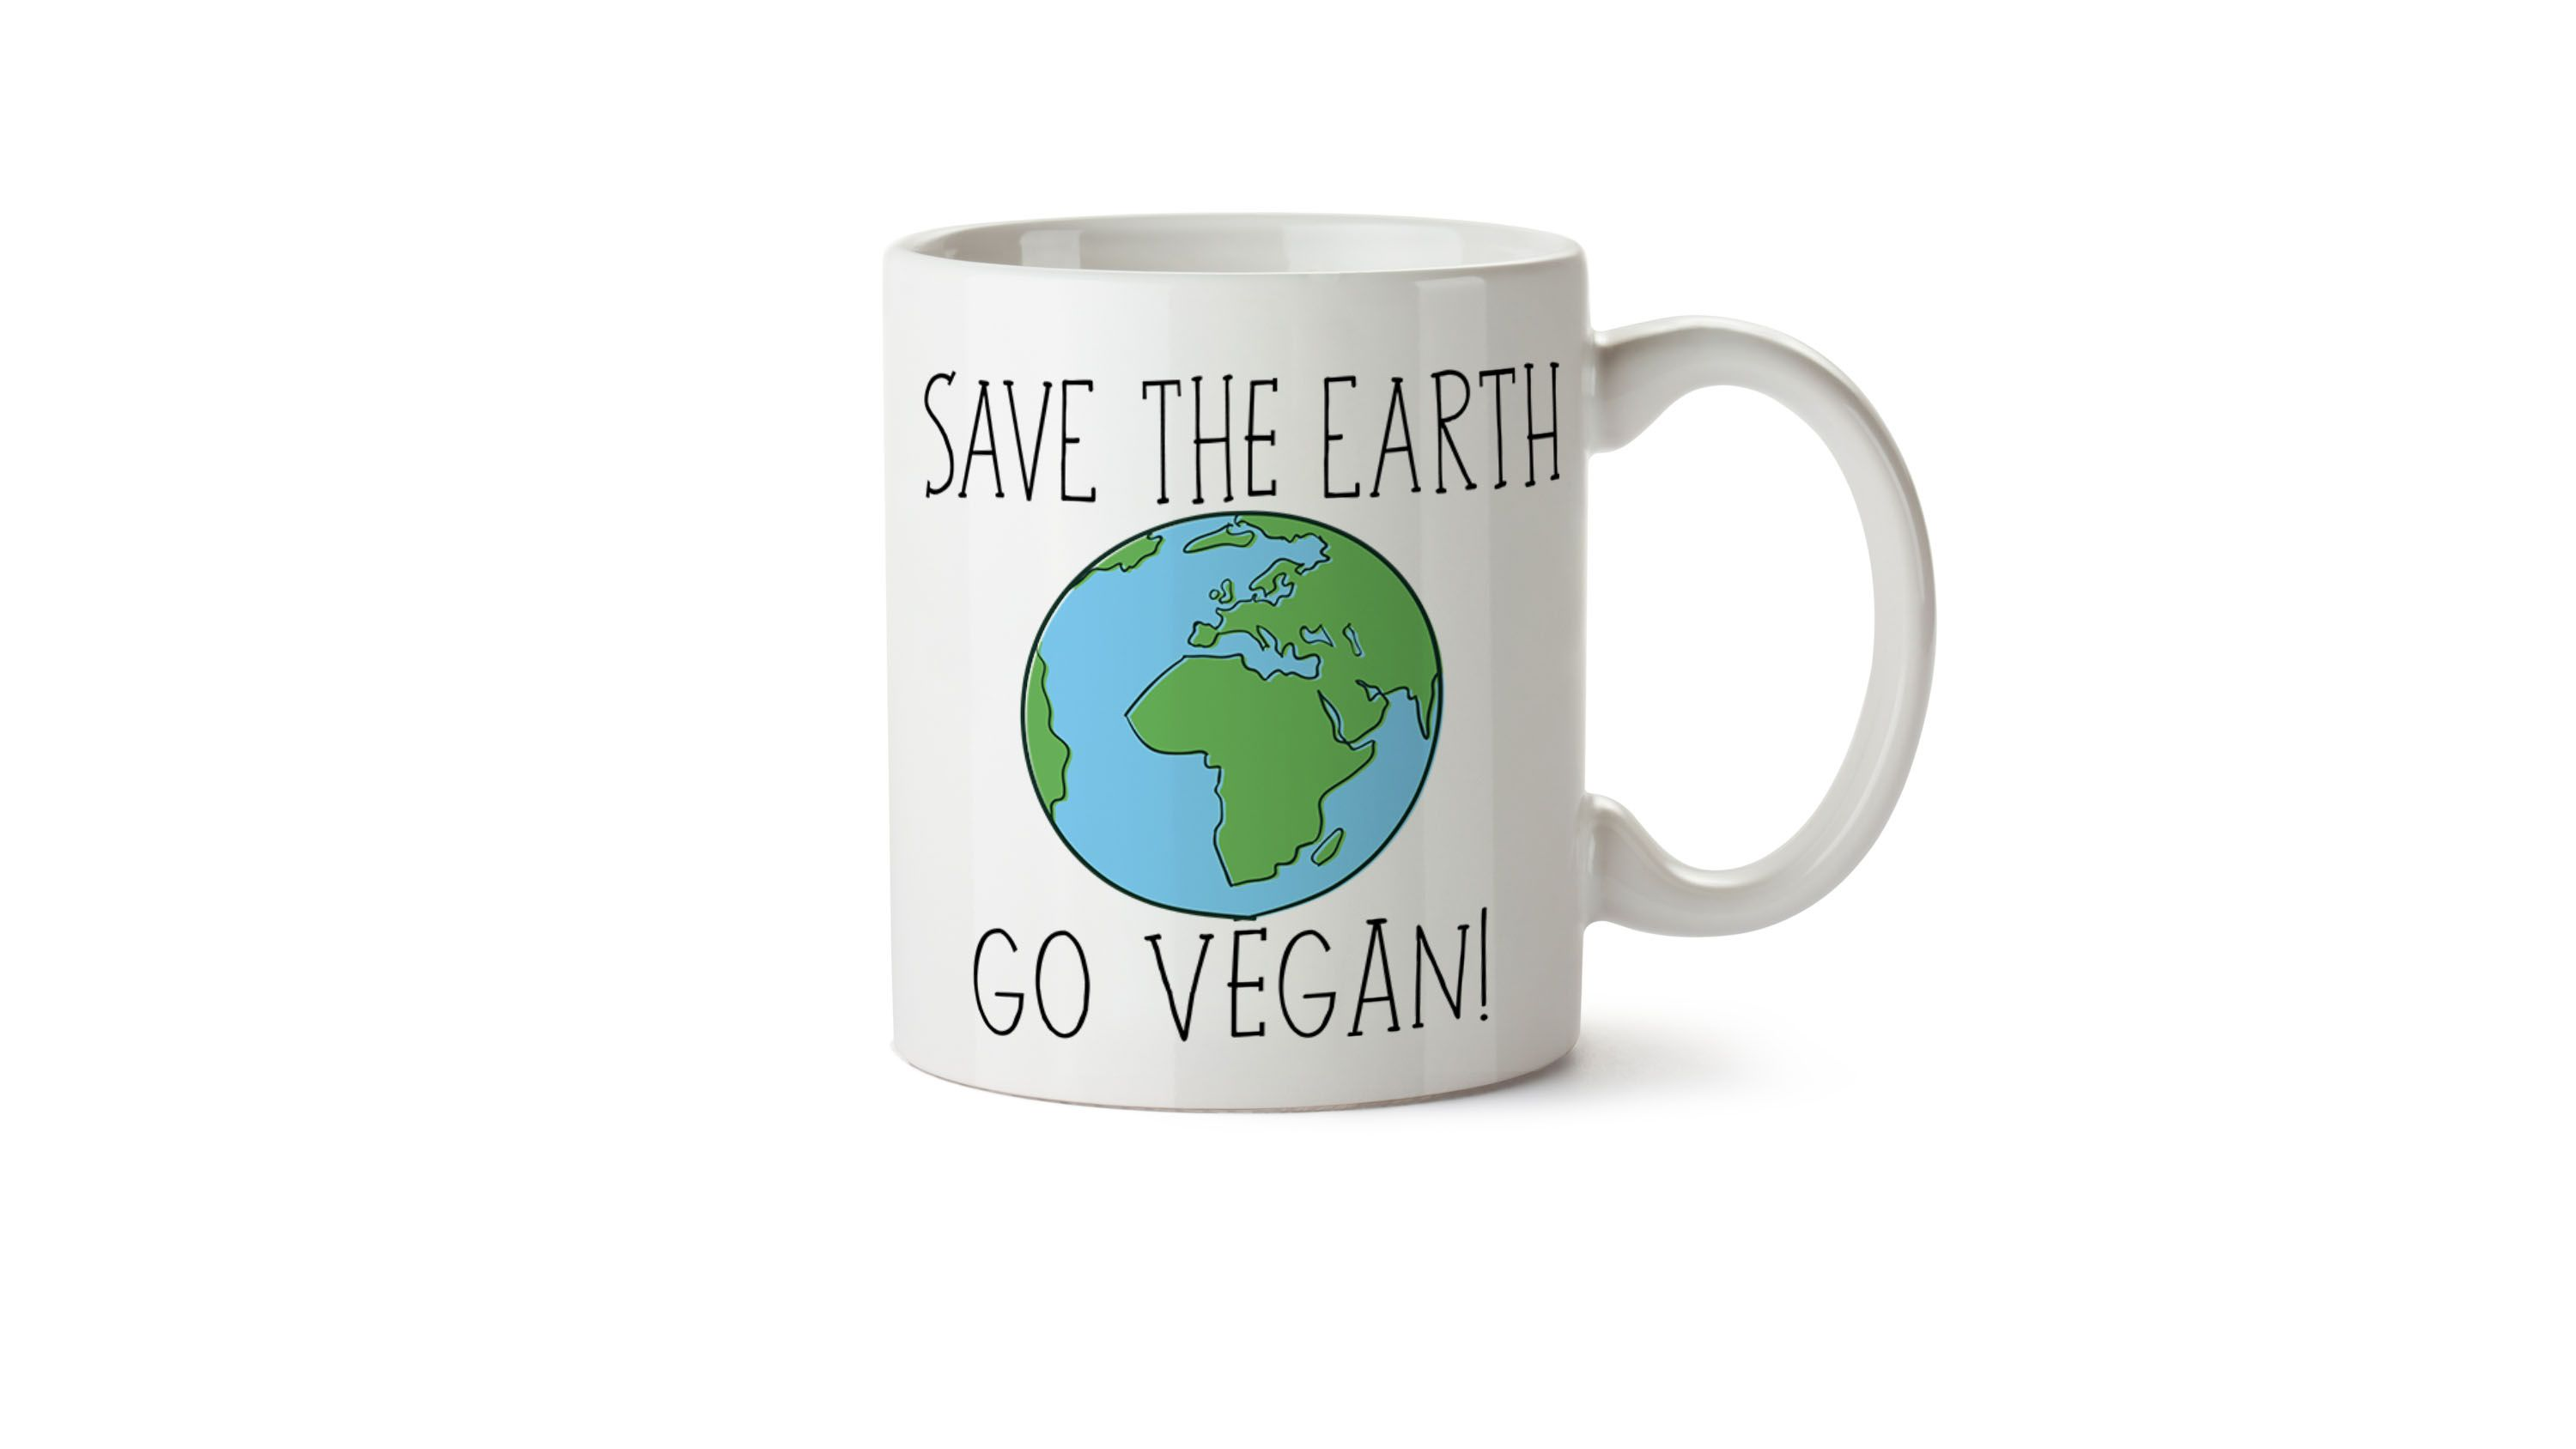 Save the Earth, Go Vegan!